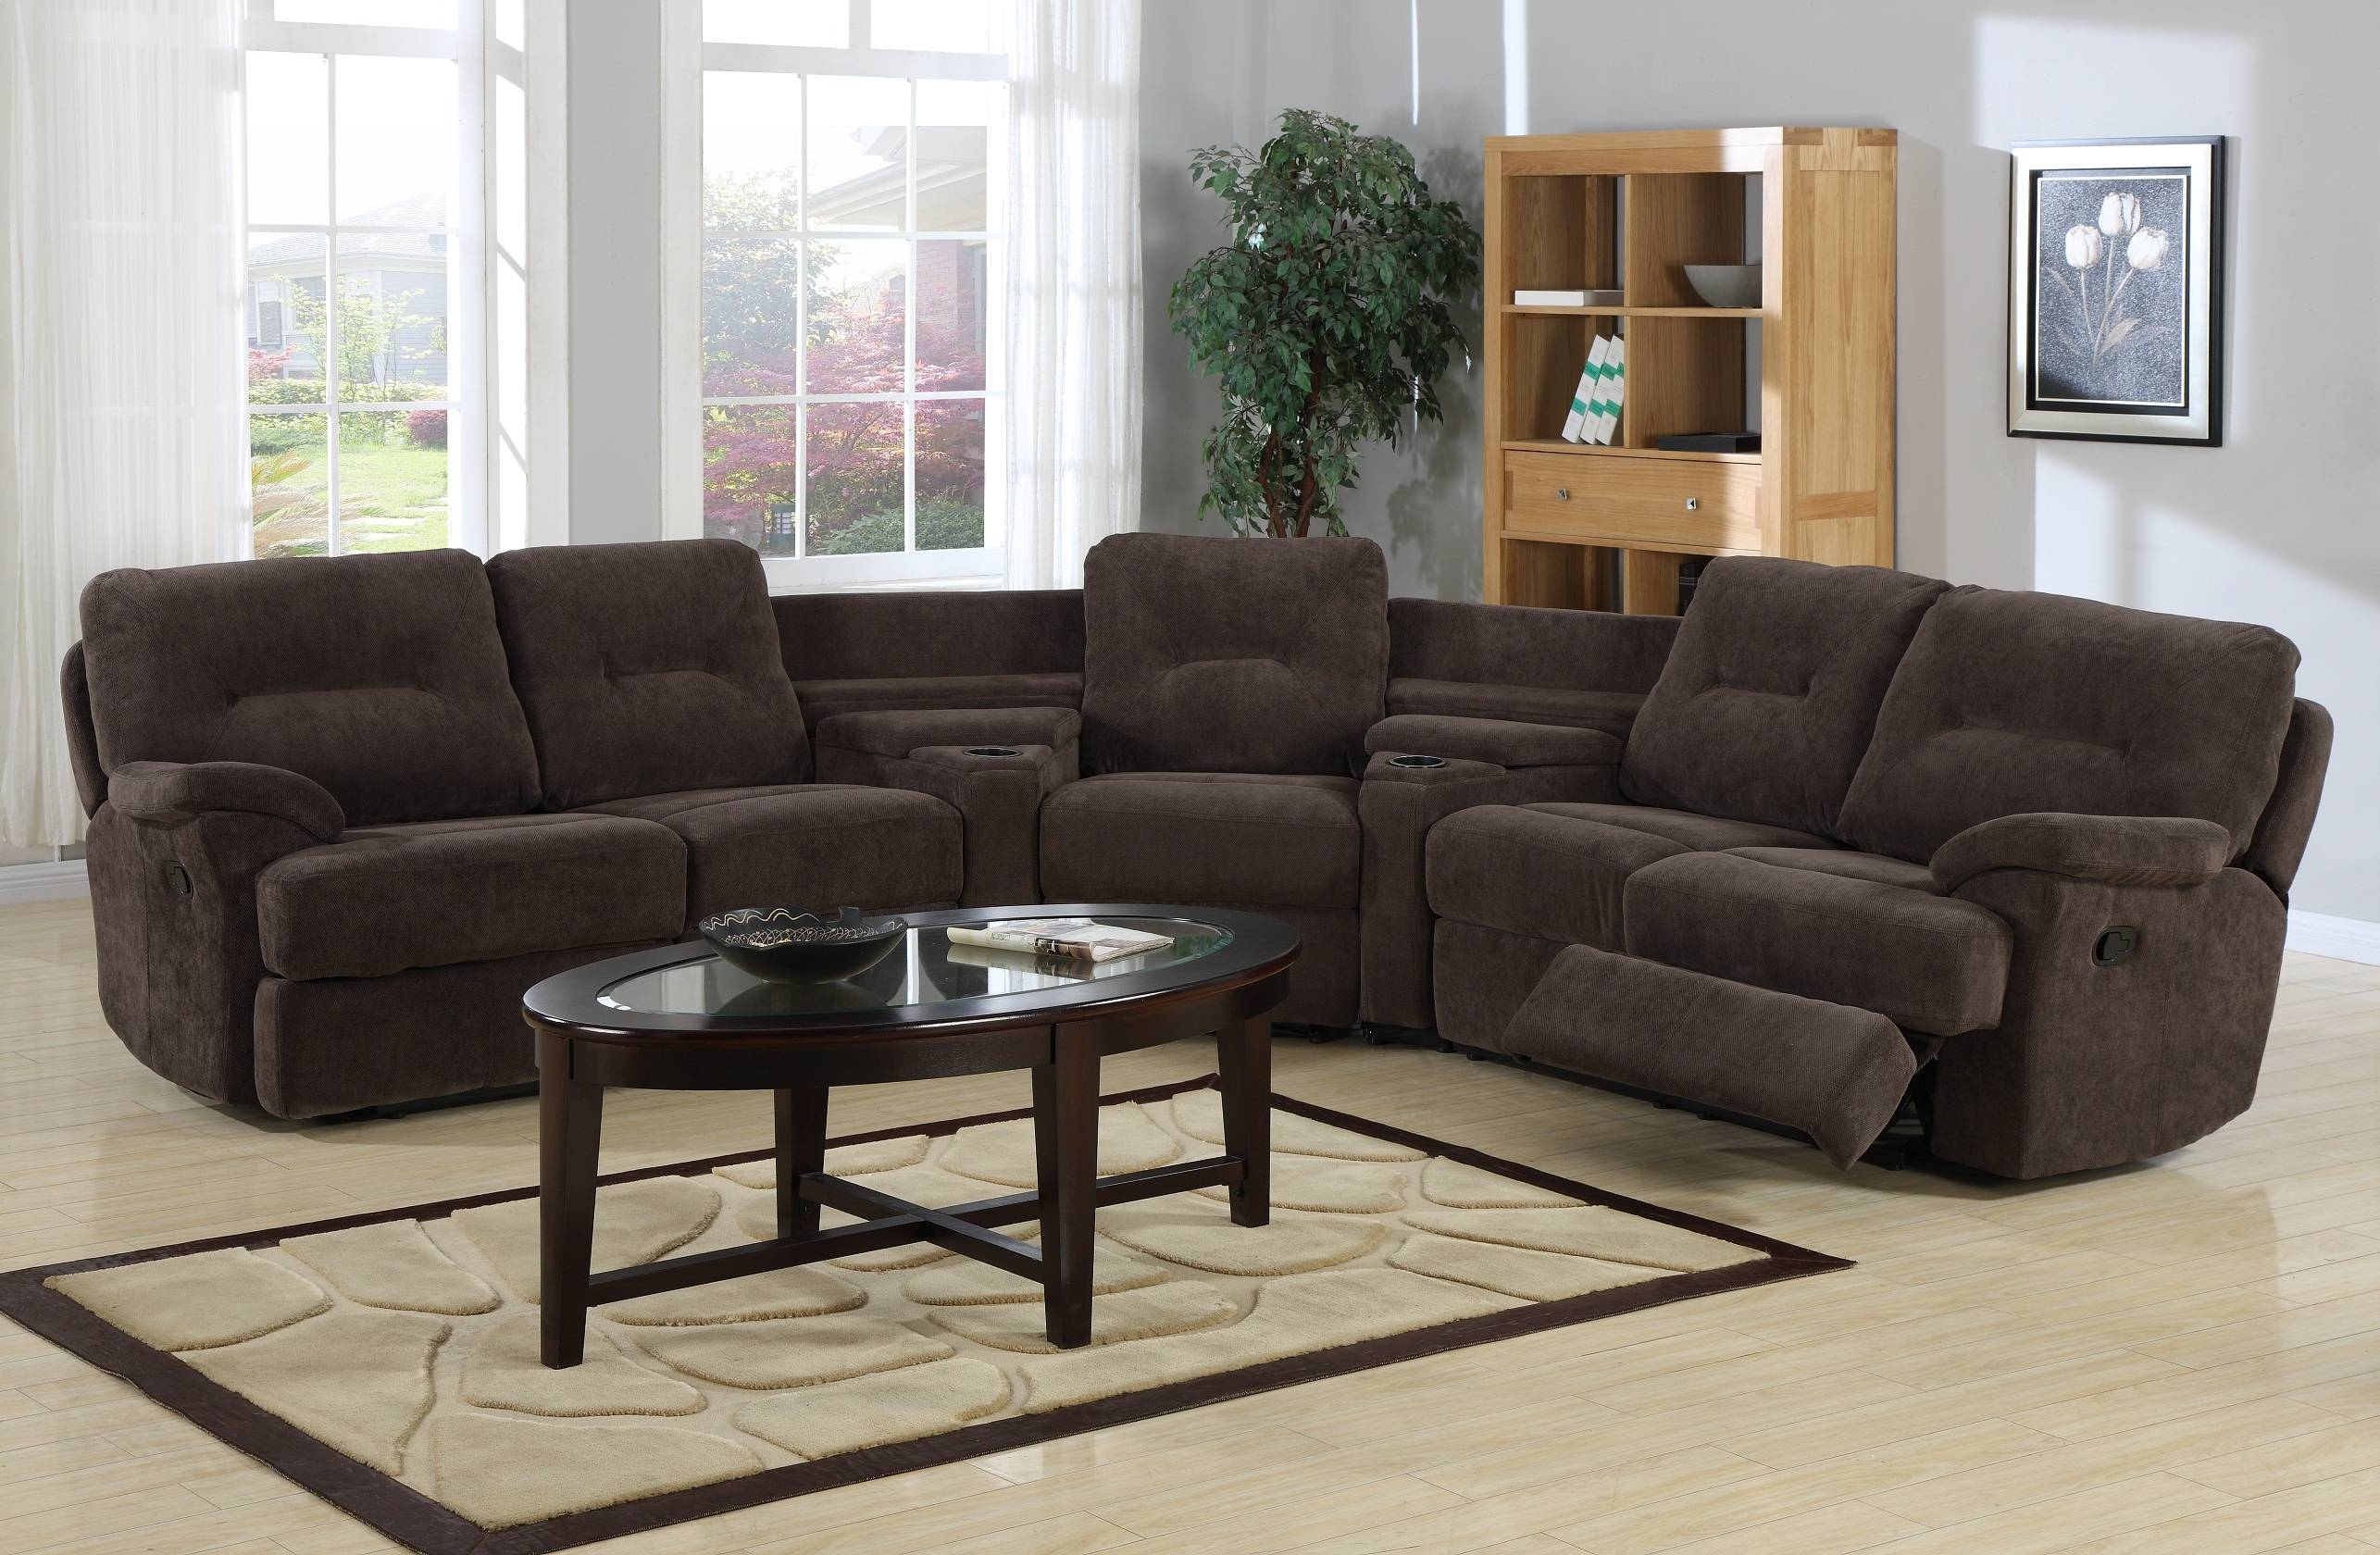 Astounding Curved Sectional Sofa With Recliner 14 In Chaise Queen Regarding Curved Sectional Sofas With Recliner (Photo 1 of 15)